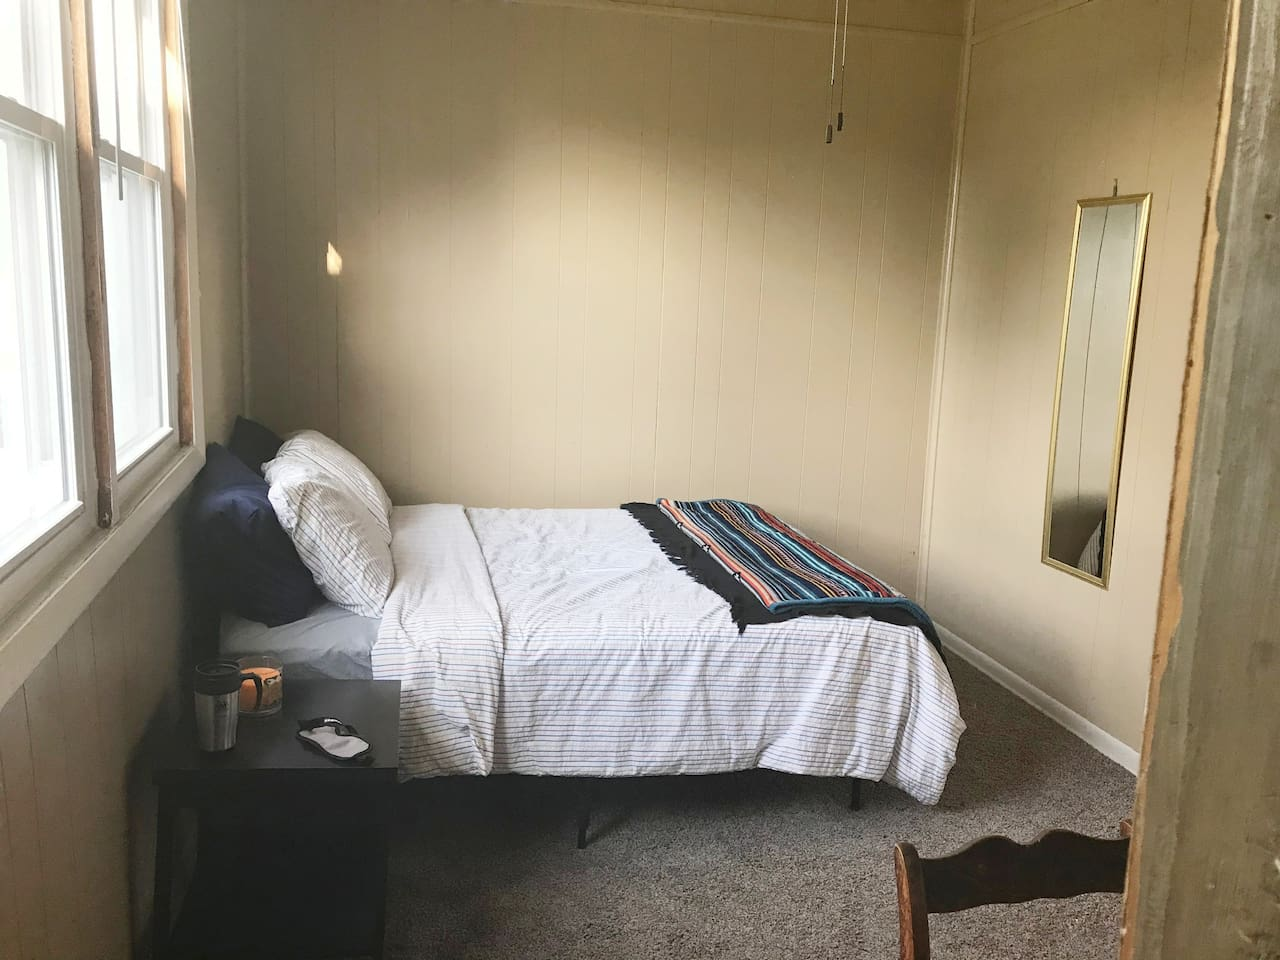 This is bedroom 1, it has one queen sized bed placed closely unto the dramatic finish wall and this would be the first thing you'll seen in entering the bedroom door. The window faces to your left and under it is a coffee table for you to enjoy.